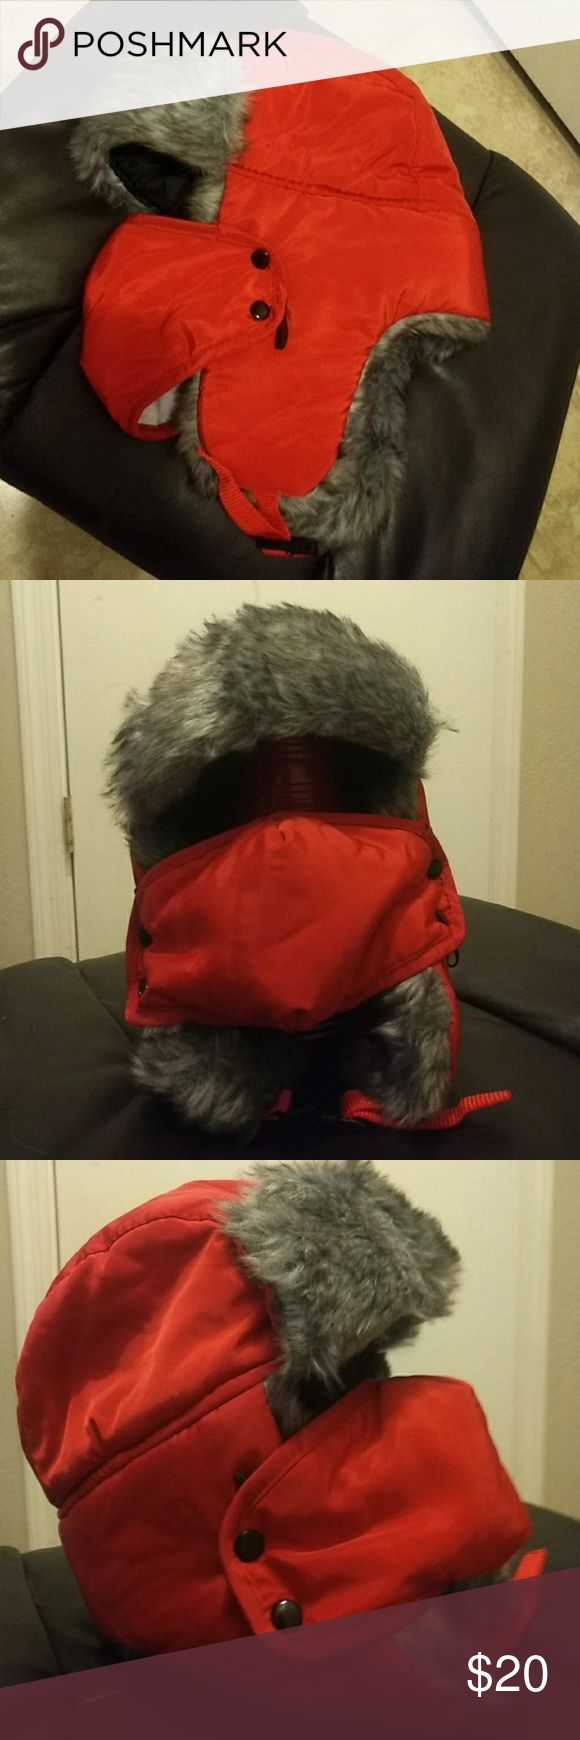 Snowboarding hat Red snowboarding hat with grey (faux)fur & black on the inside. Has a chin buckle and snaps to hold on the mouth cover! The cover also has elastic straps if you'd rather wear around your ears. Like new condition! Accessories Hats